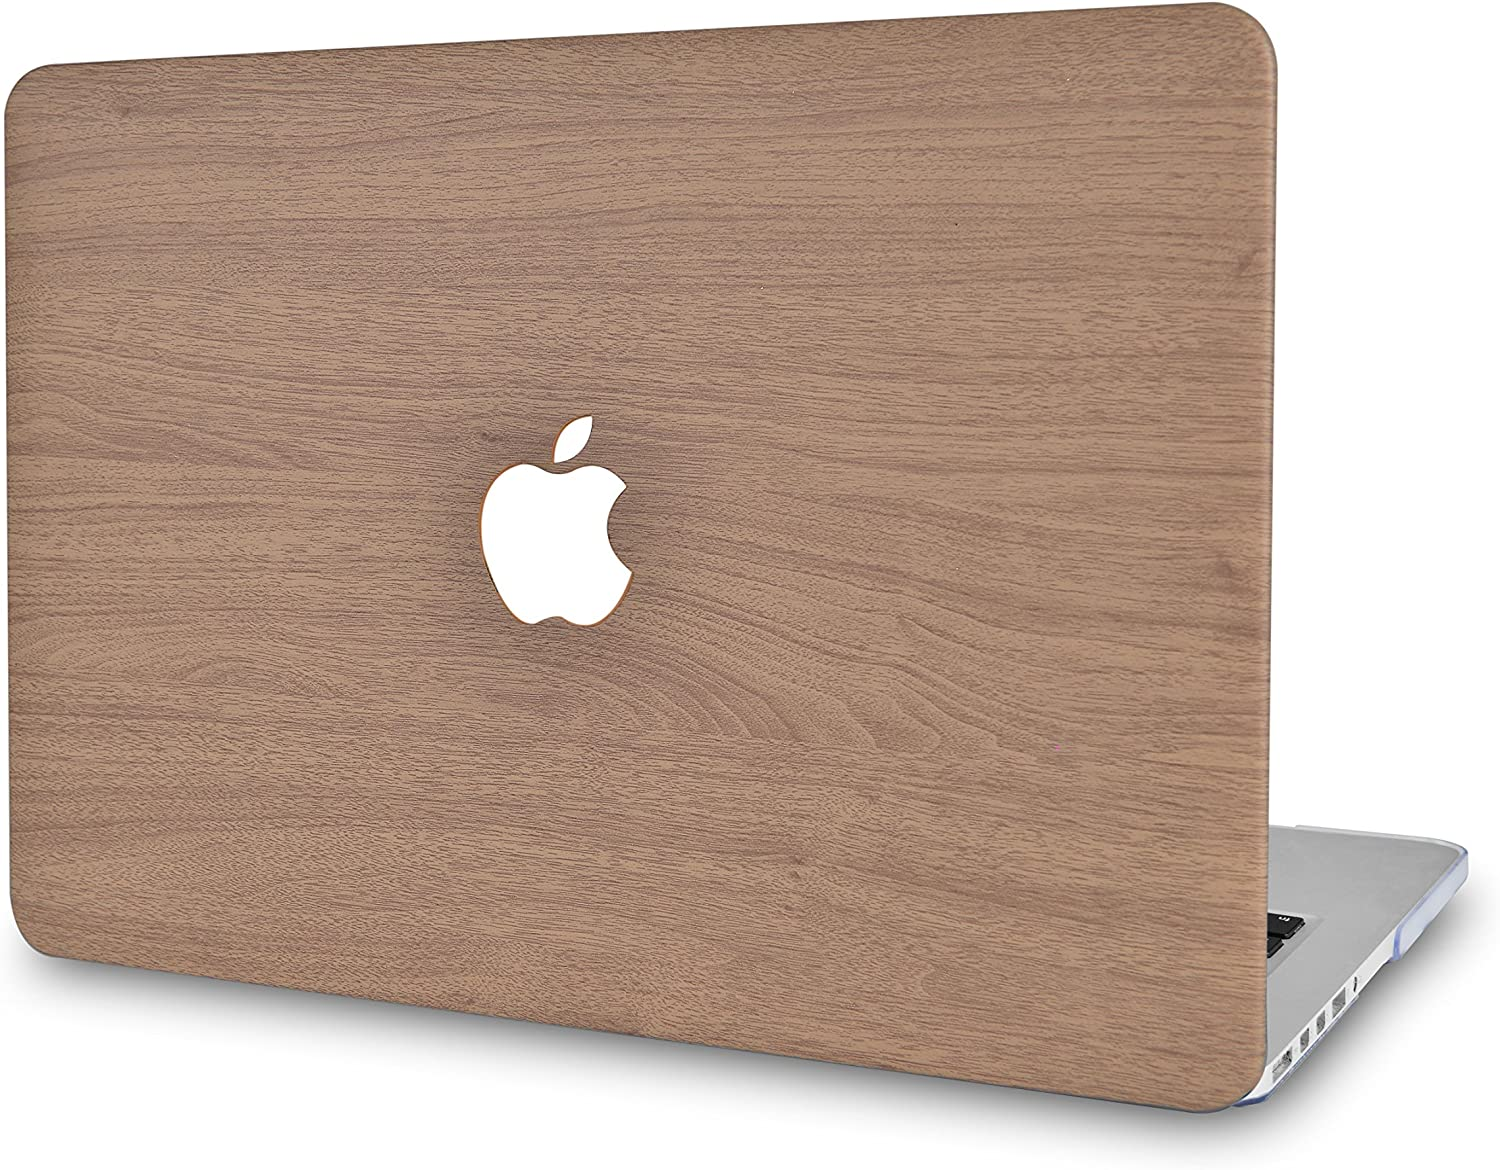 LuvCase Laptop Case for MacBook Air 13 Inch A1466 / A1369 (No Touch ID) Leather Hard Shell Cover (Brown Wood)